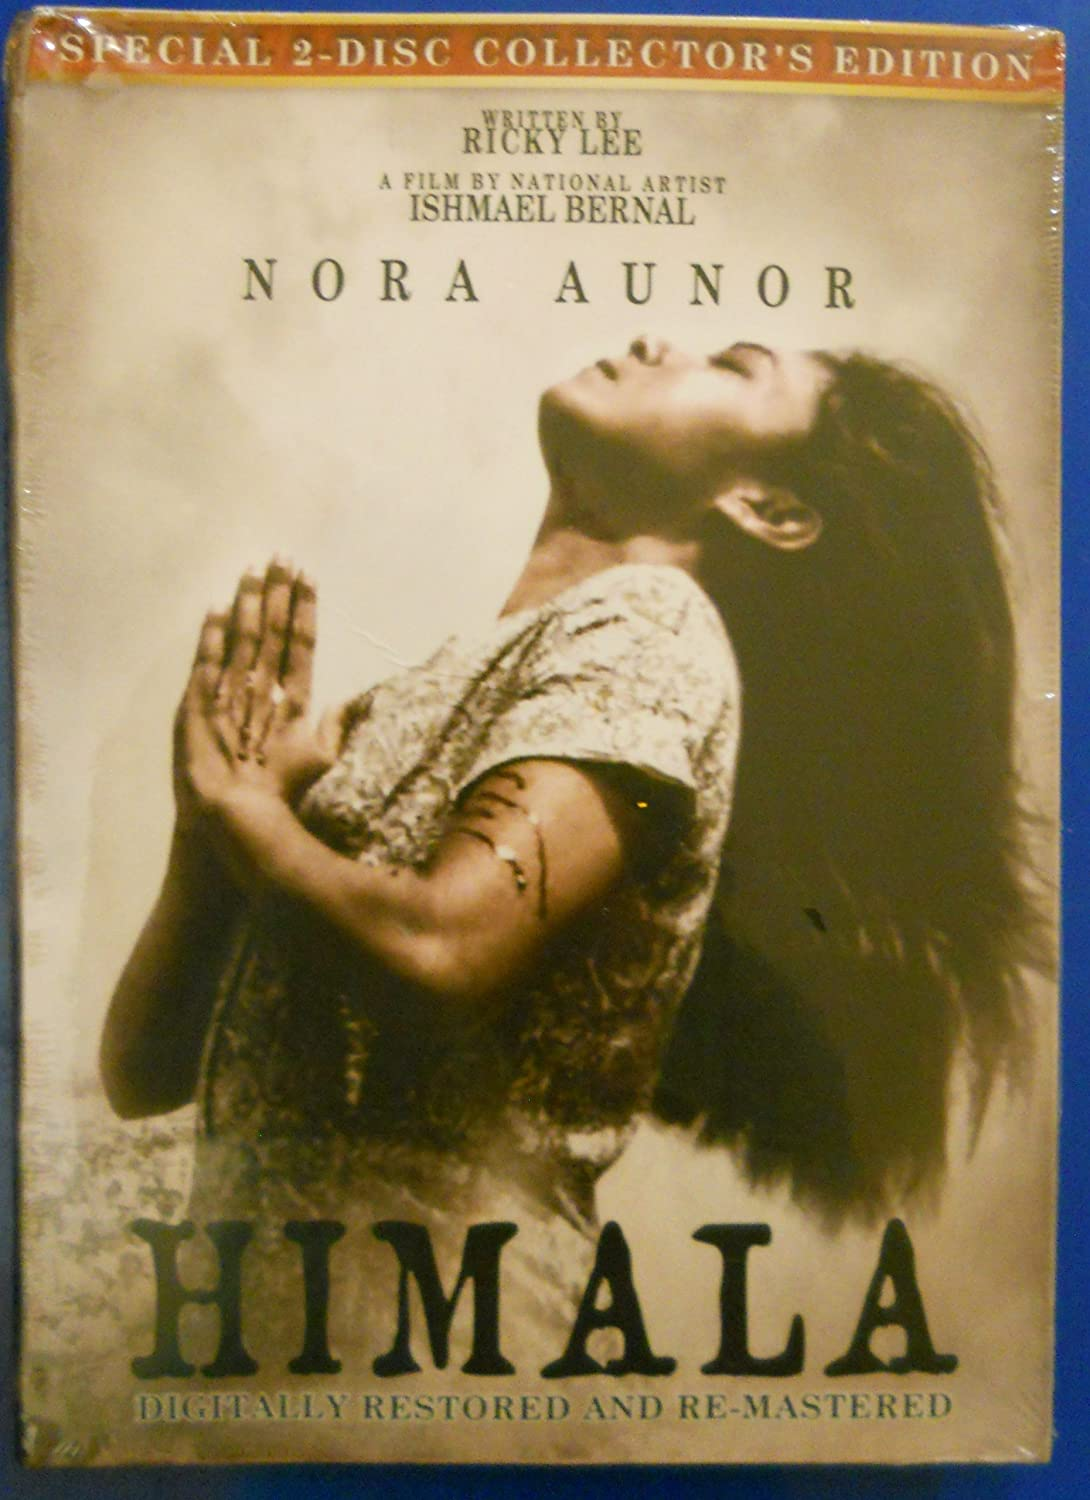 Himala - Special 2-Disc Collector's Edition